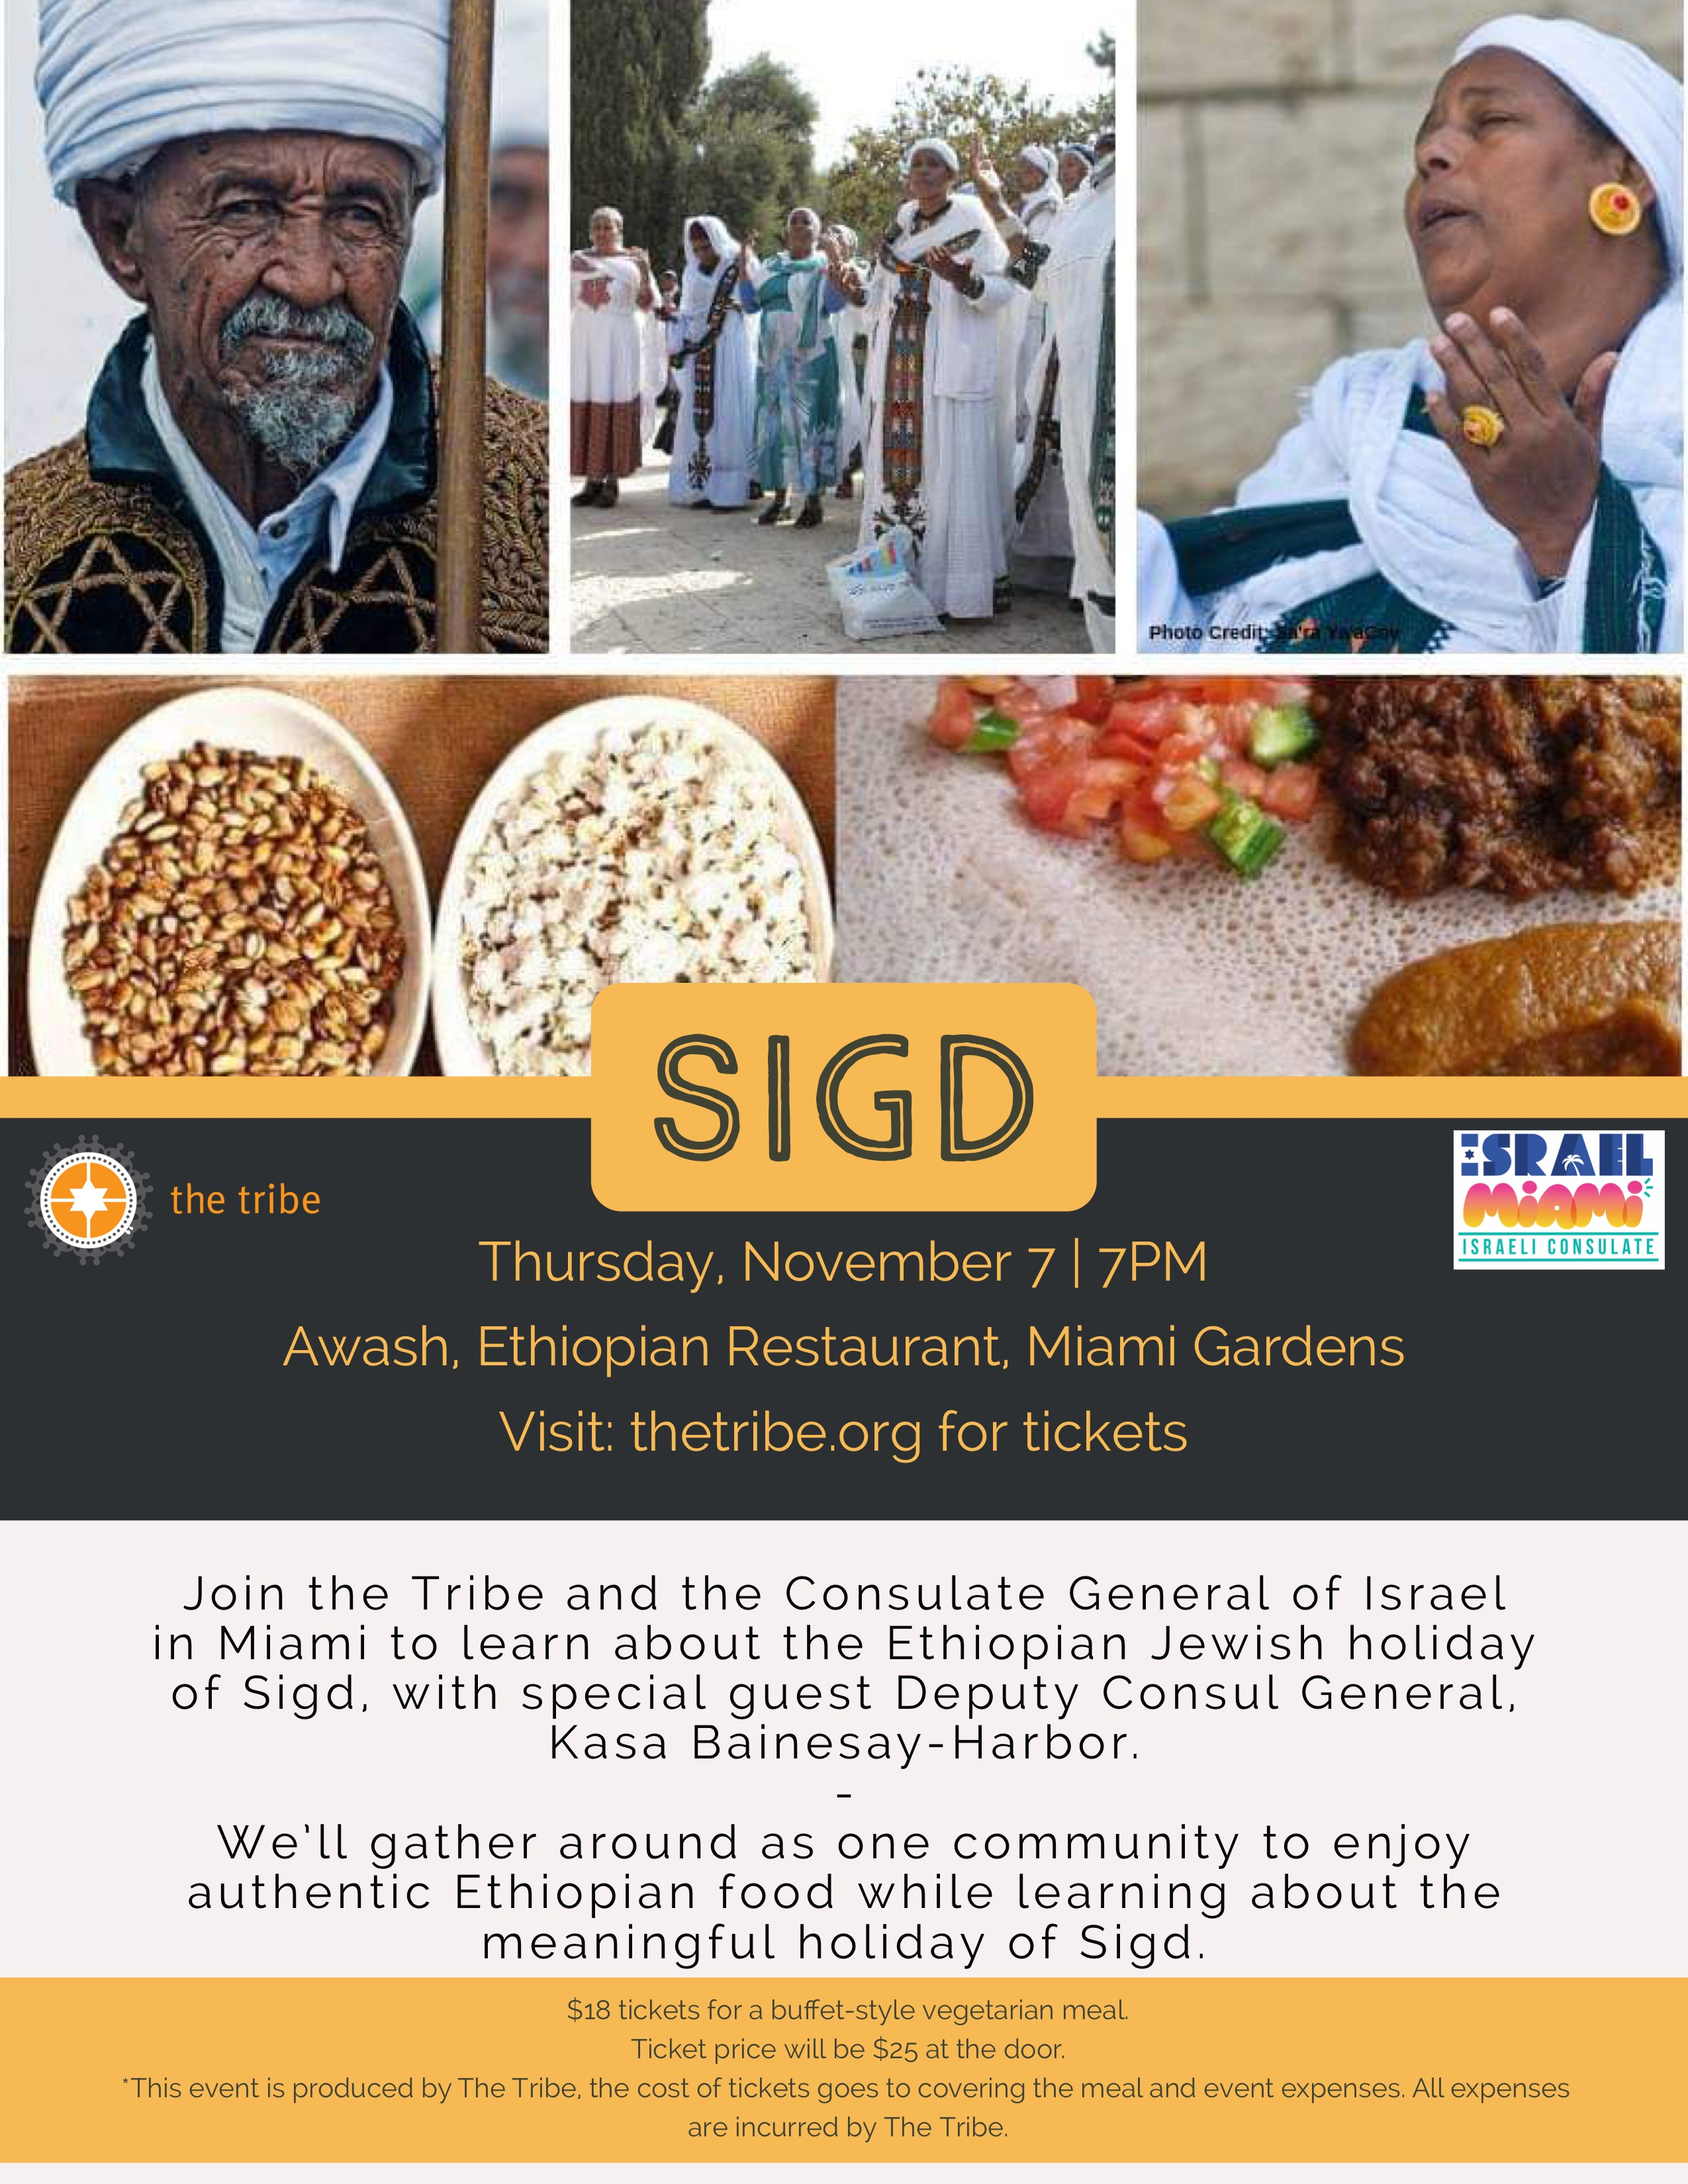 SIGD with The Tribe and Israel in Miami